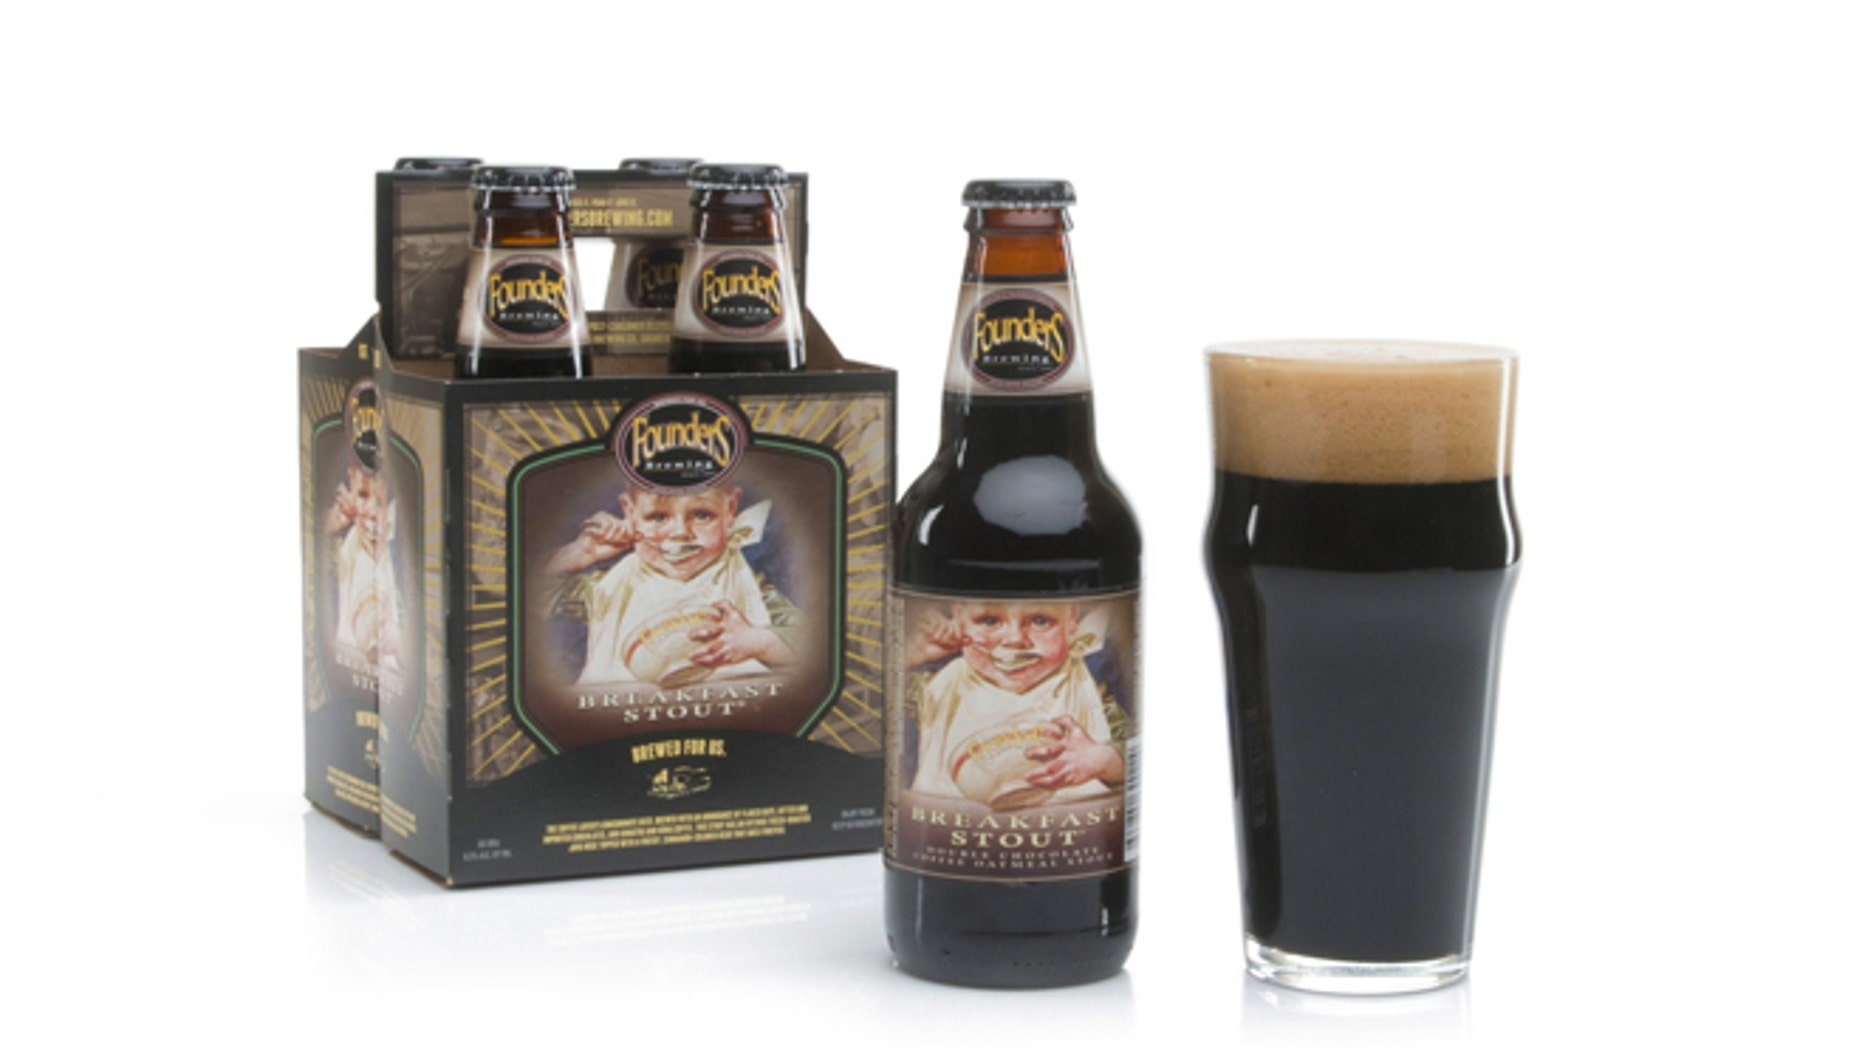 This creamy, sweet stout features a picture of a baby on the packaging.